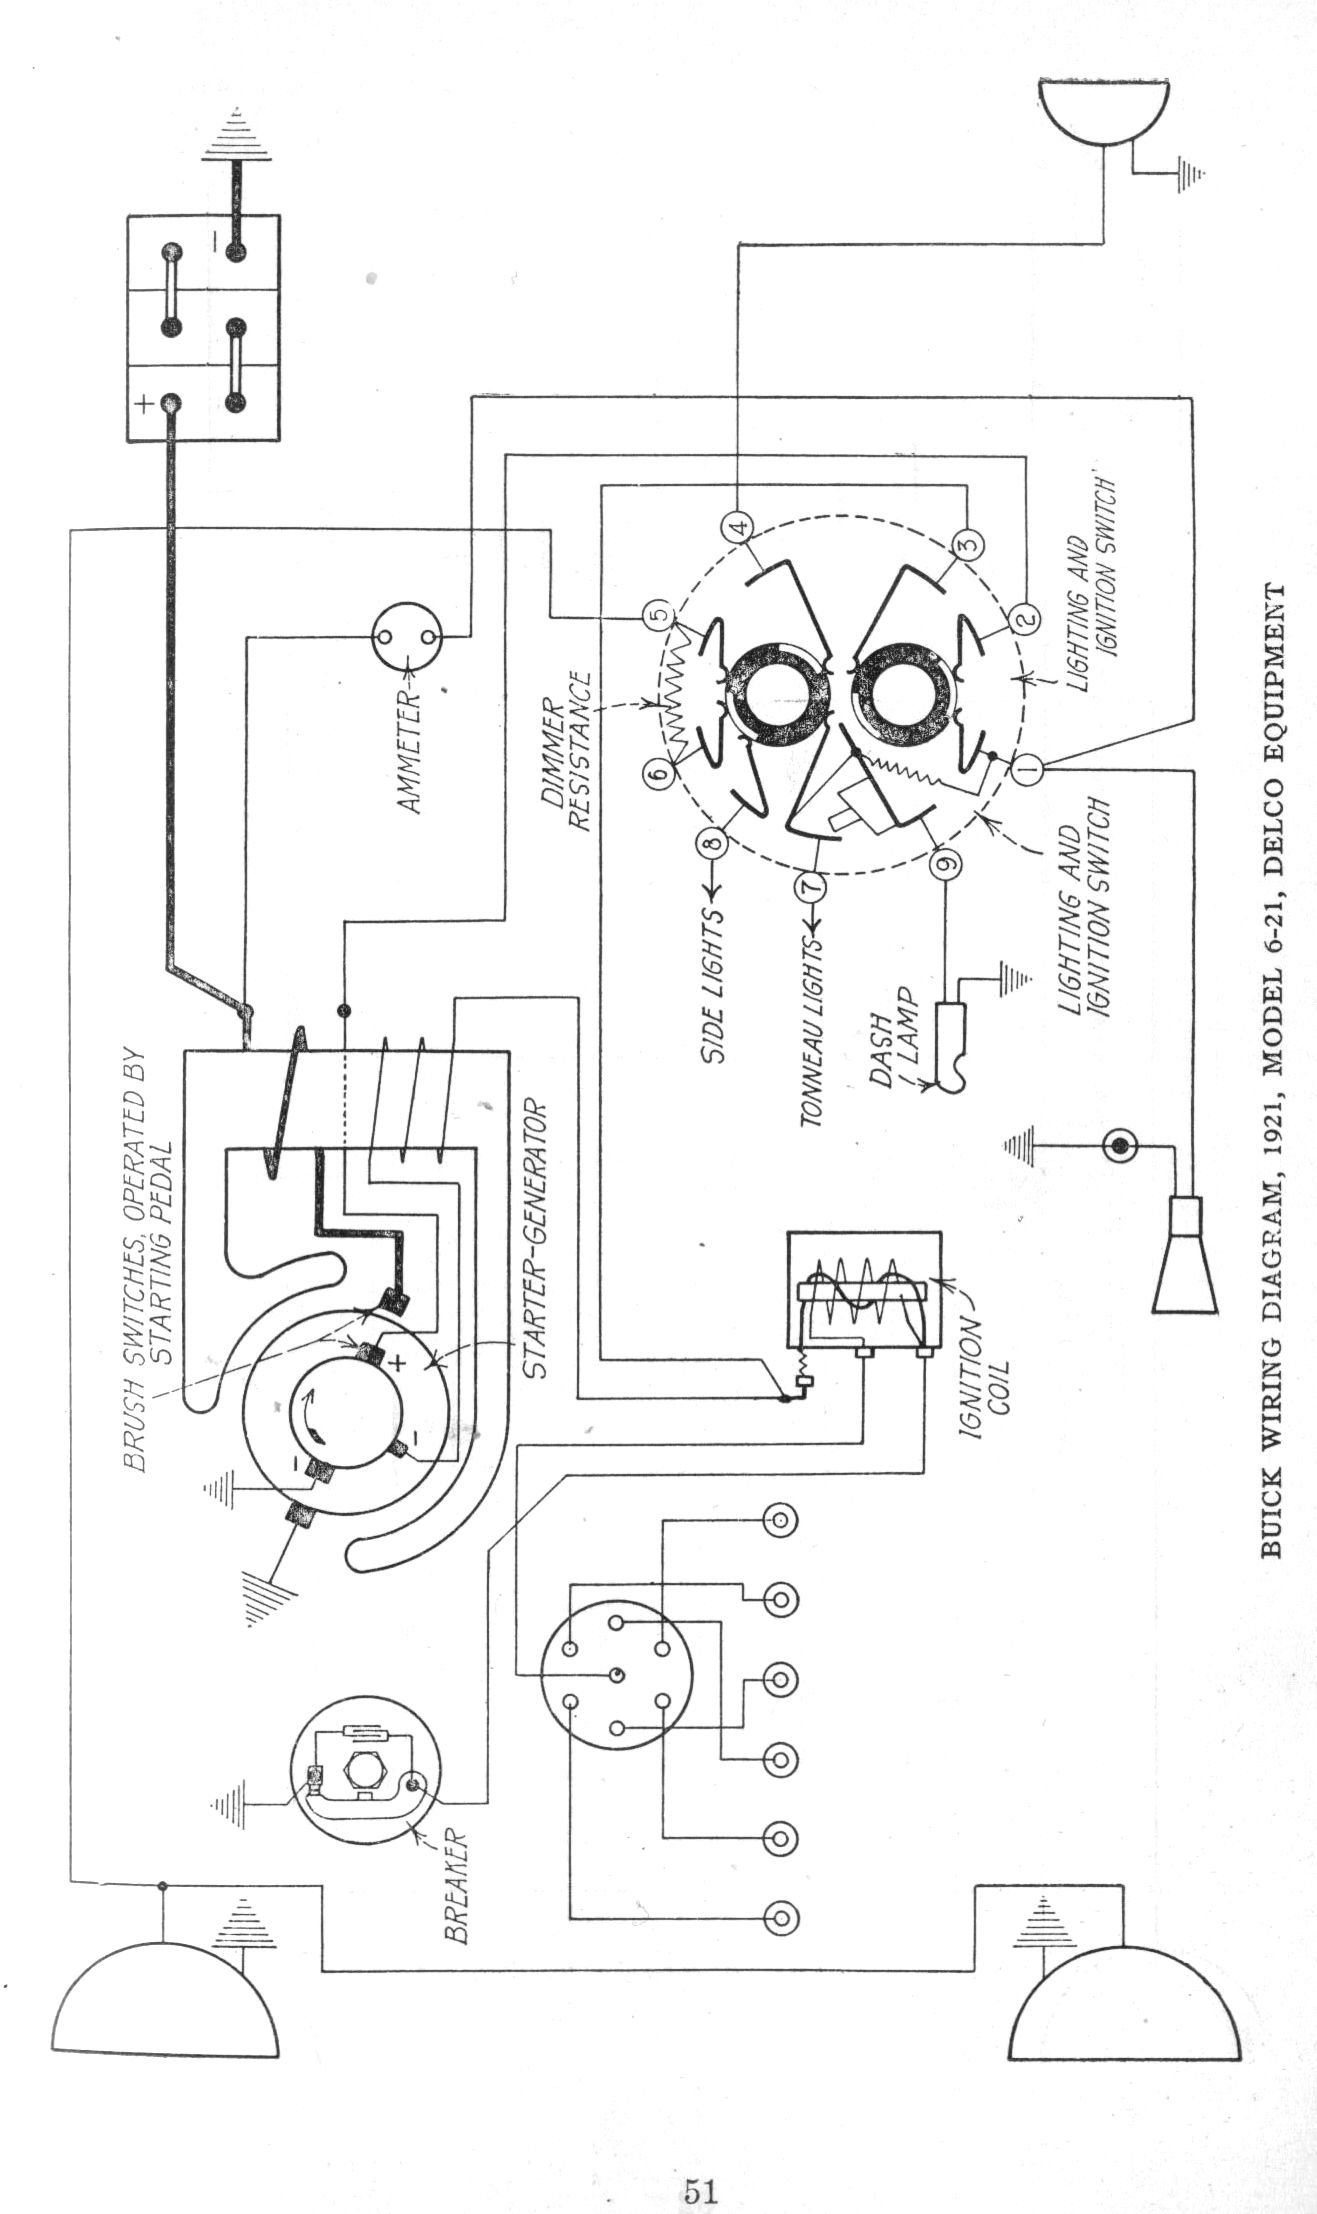 Buick Model_6 21 early 1920's apperson and buick wiring diagrams the old car 2010 Buick Lacrosse Wiring-Diagram at mifinder.co